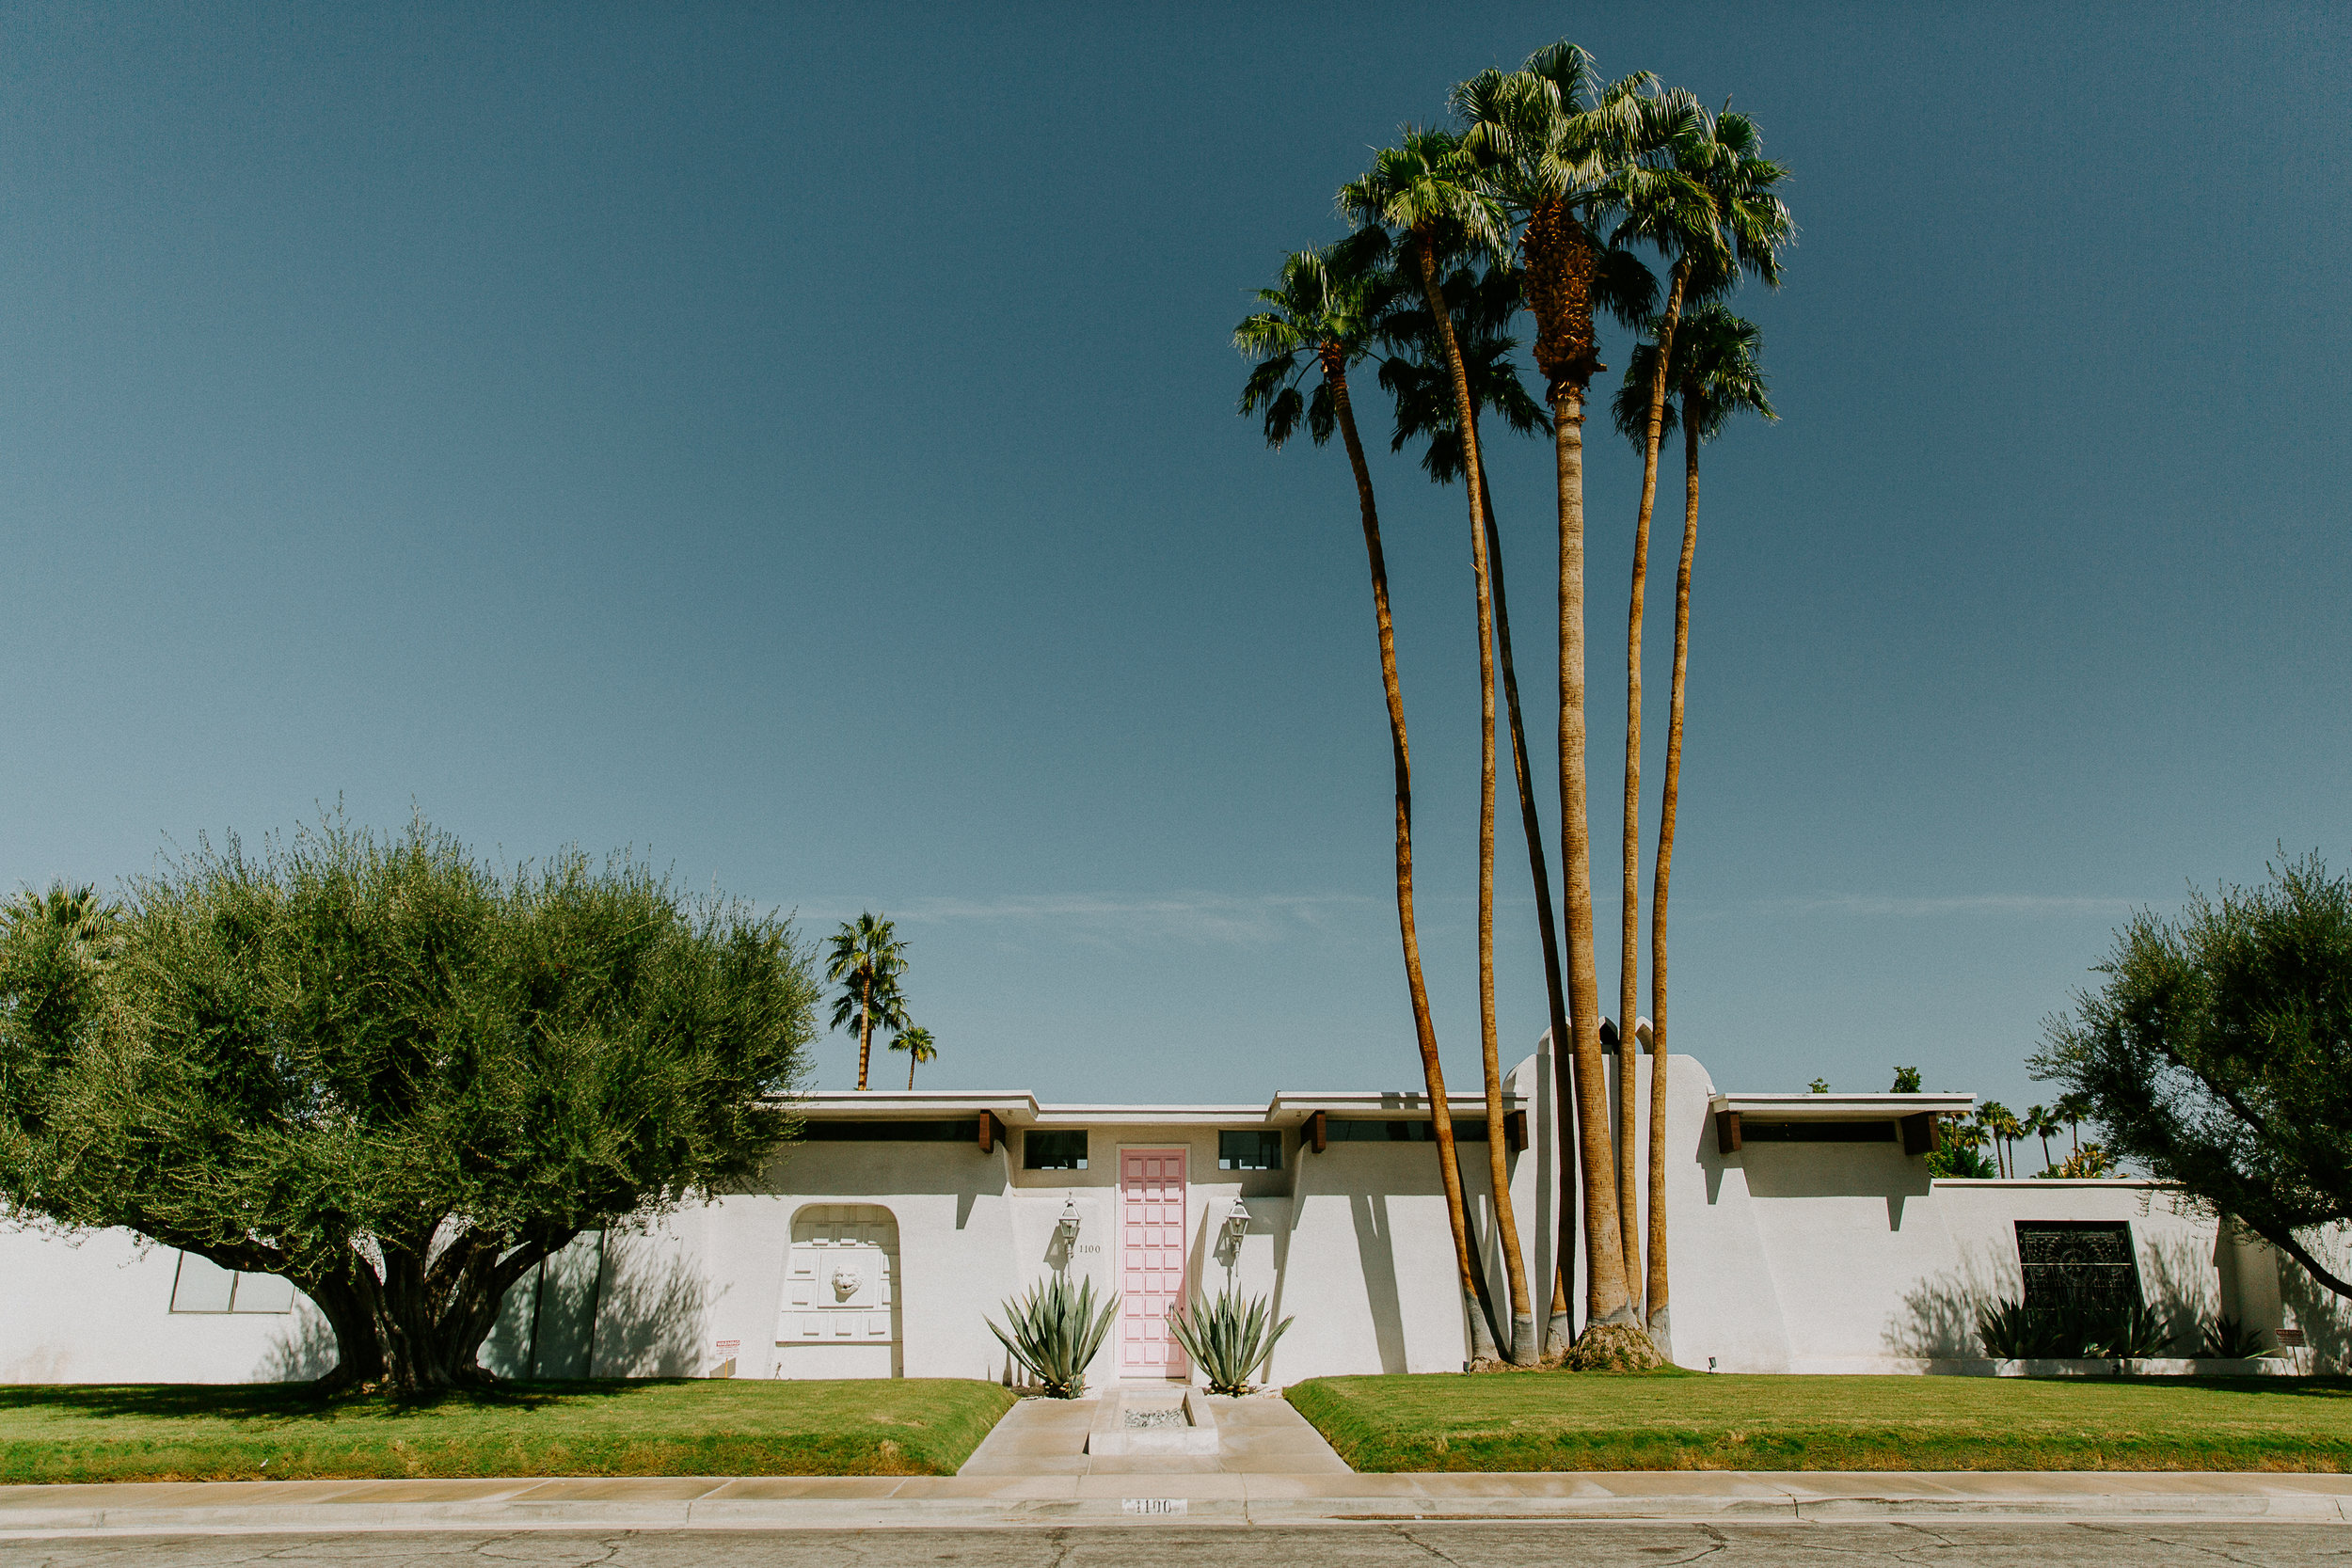 Lover of all things mid-century modern, I just can't get enough of the amazing properties and neighborhoods in Palm Springs